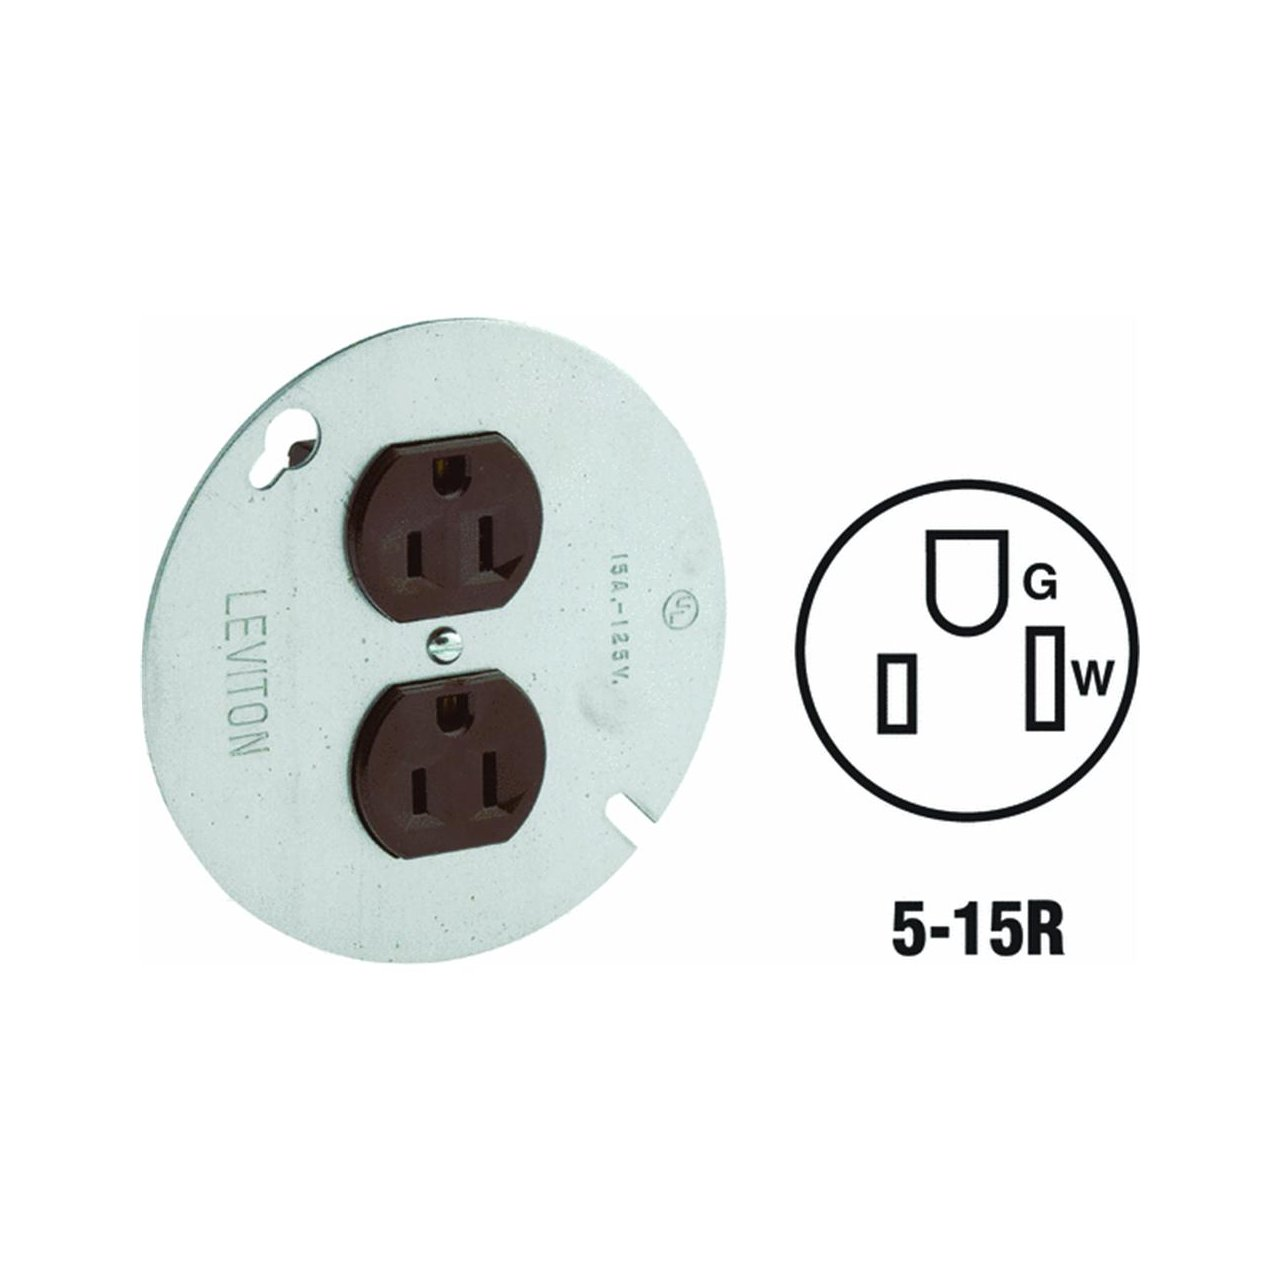 Leviton 5042 15 Amp, 125 Volt, Duplex Receptacle On 4-Inch Cover, Zinc Plated Steel